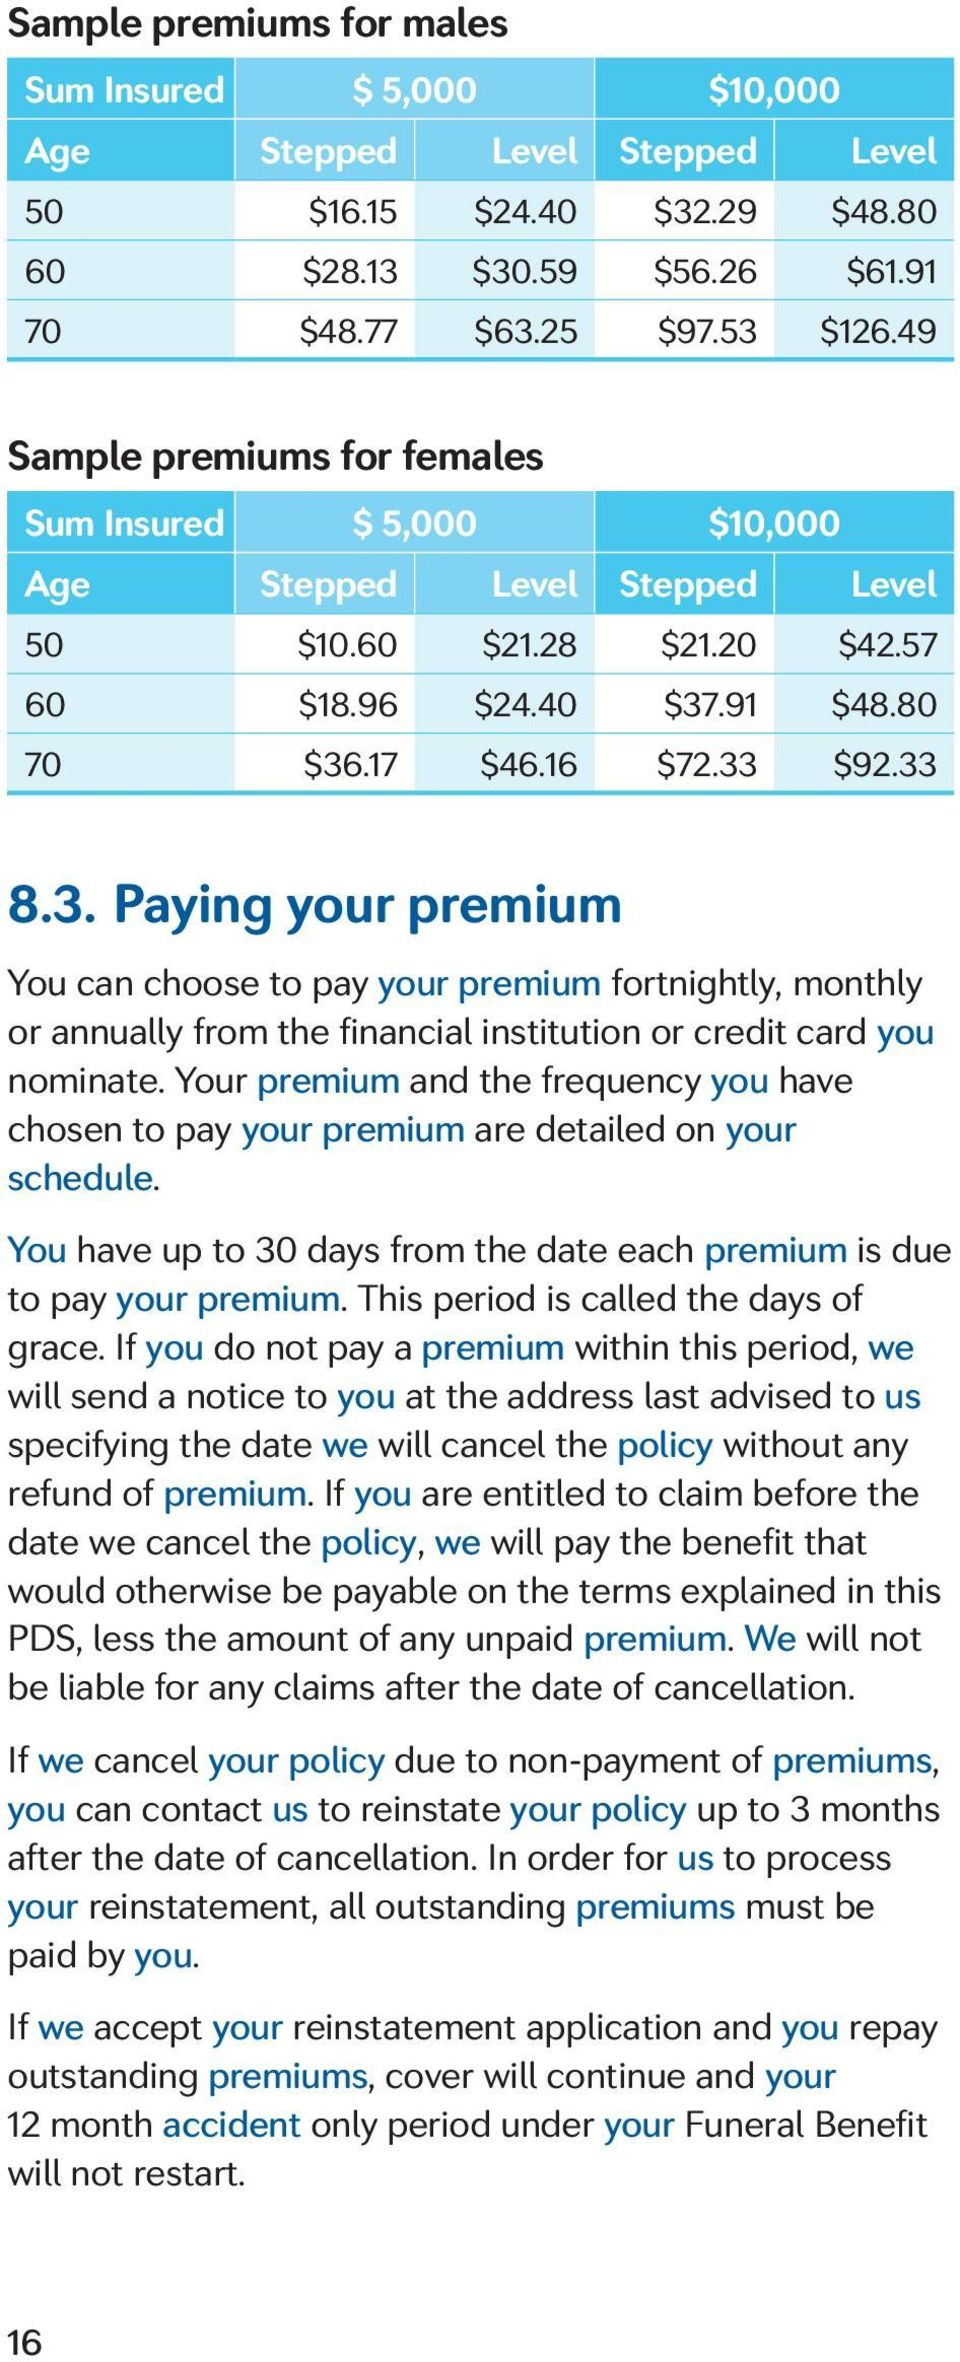 .91 $48.80 70 $36.17 $46.16 $72.33 $92.33 8.3. Paying your premium You can choose to pay your premium fortnightly, monthly or annually from the financial institution or credit card you nominate.